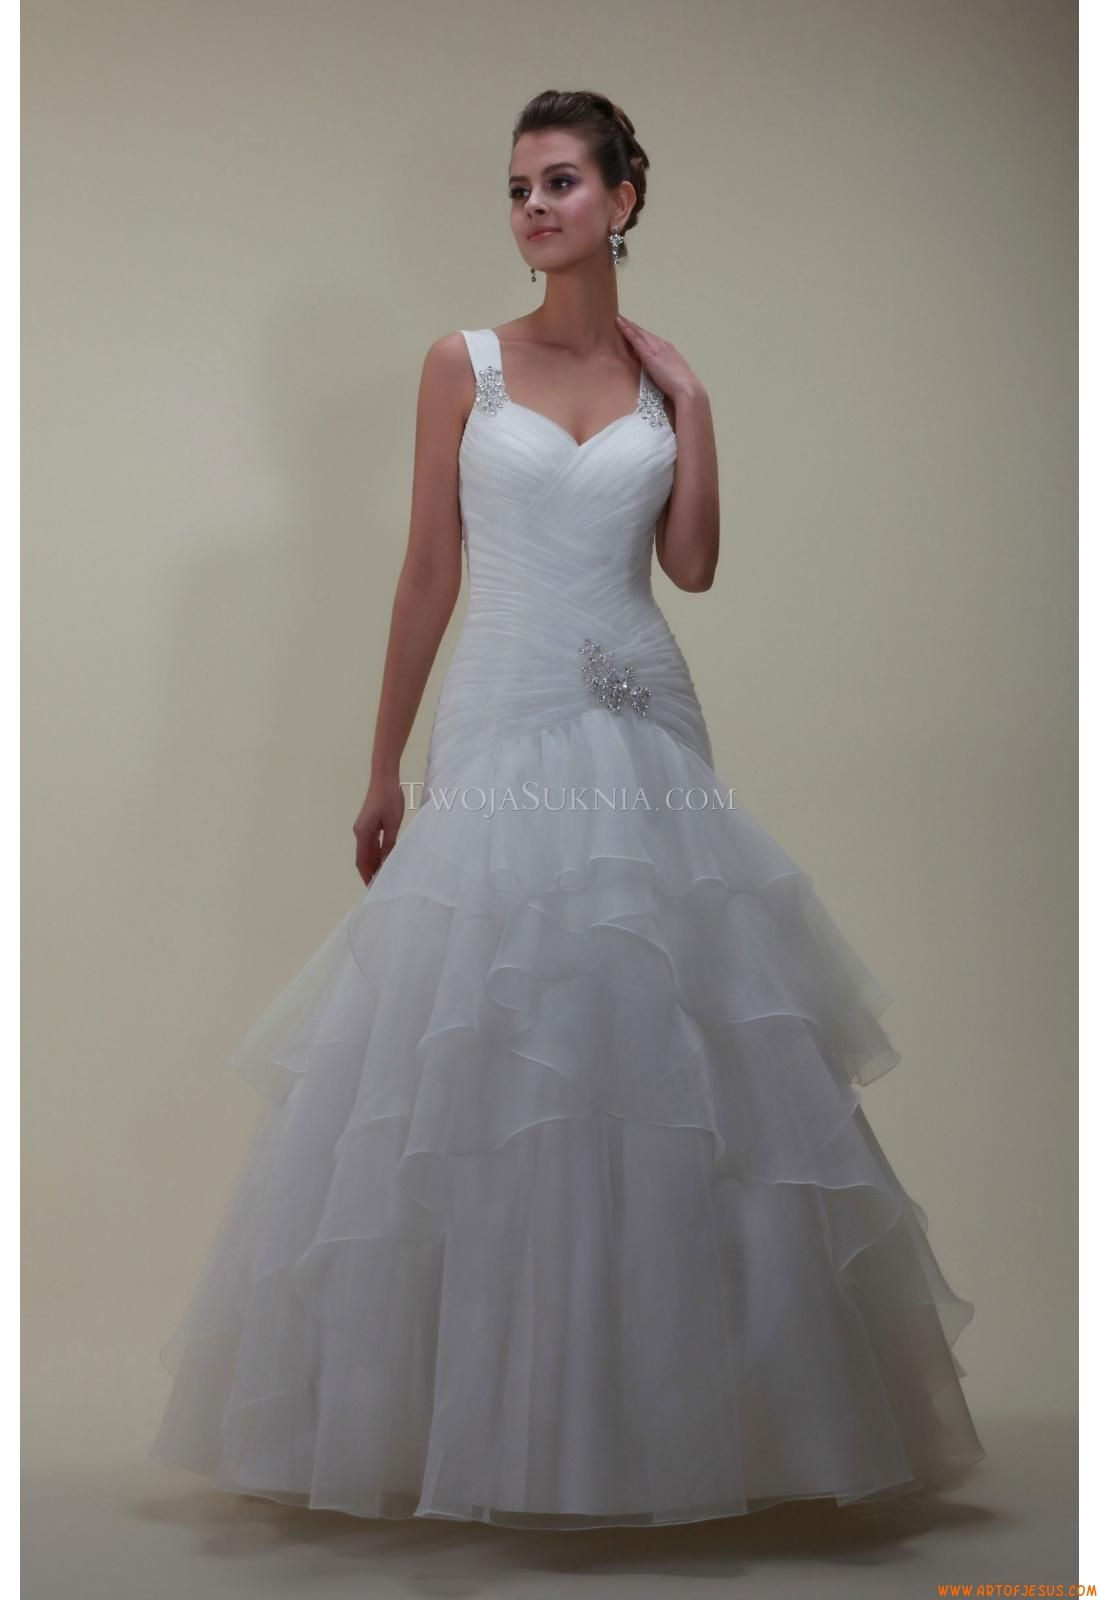 Wedding Dress Venus VN6792 Venus Informal 2013 | Wedding Dresses ...